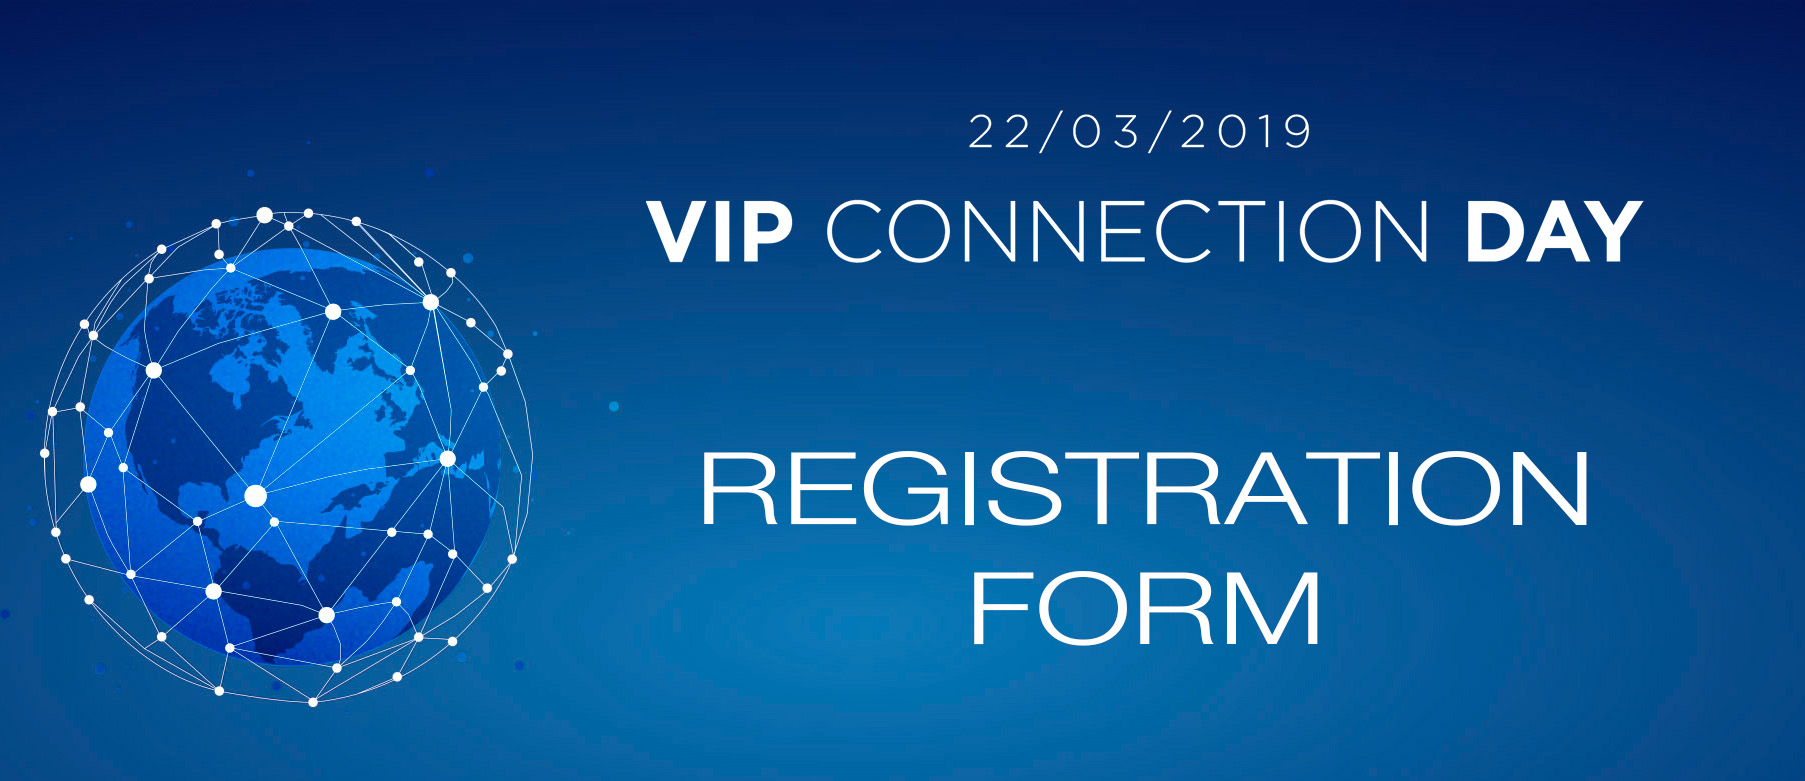 VIP Connection DAY